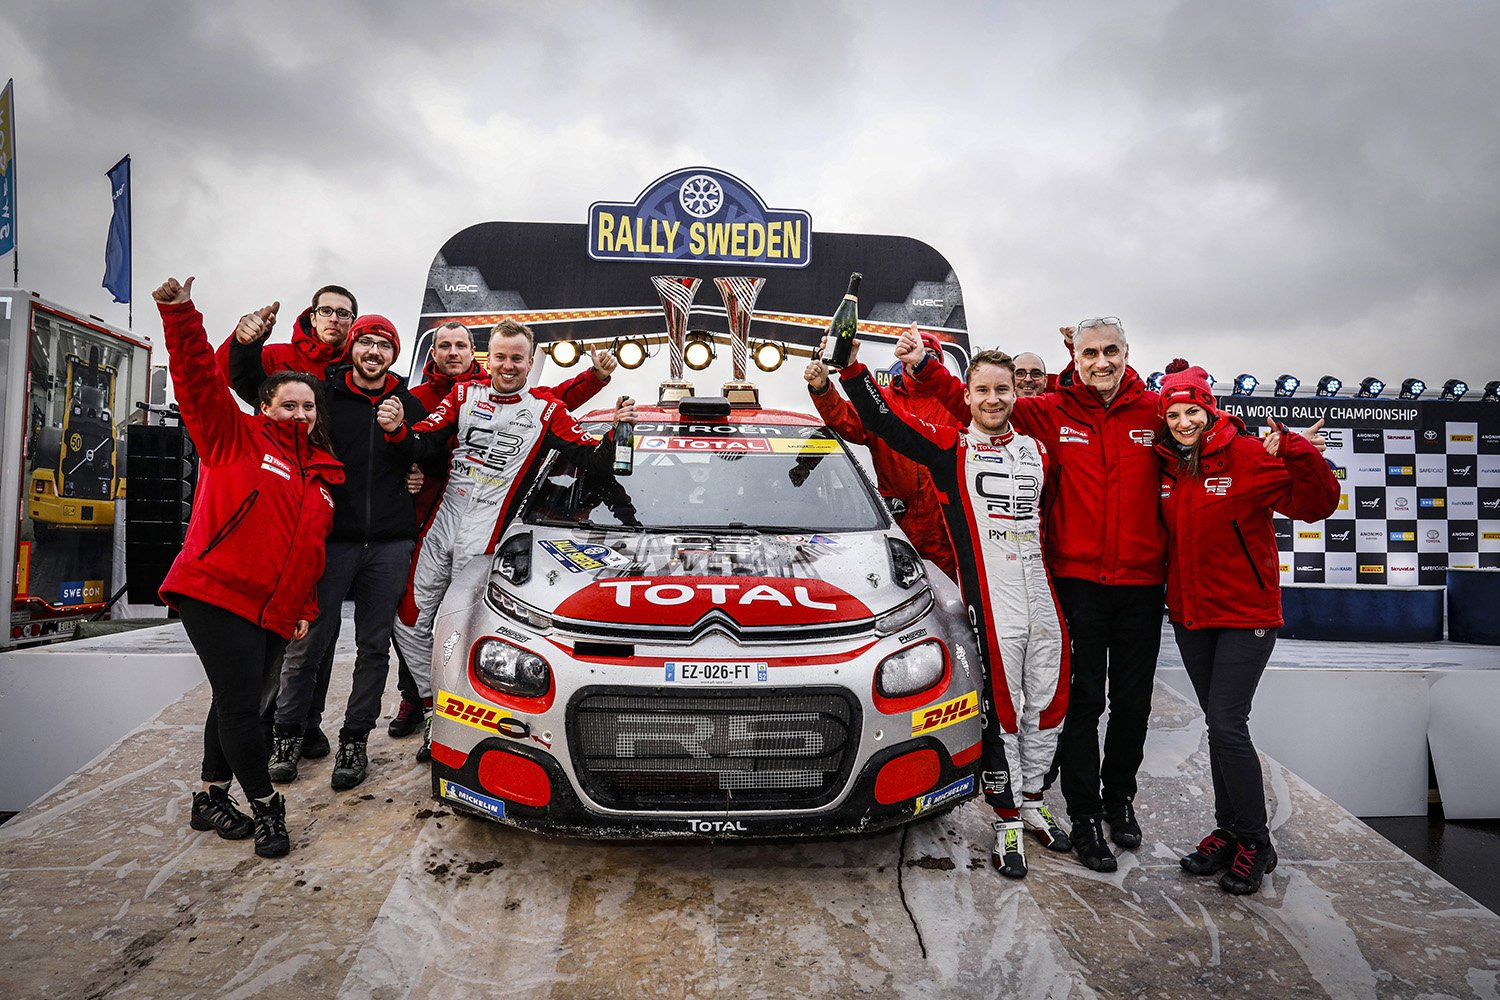 20 OSTBERG Mads (NOR), ERIKSEN Torstein (NOR), Citroen C3 R5, PH Sport WRC 2, ambiance vainqueur, winner podium ambiance during the 2020 Rally Sweden, 2nd leg of the 2020 FIA WRC Championaship from February 13 to 16, 2020 at Torsby, Varmland in Sweden